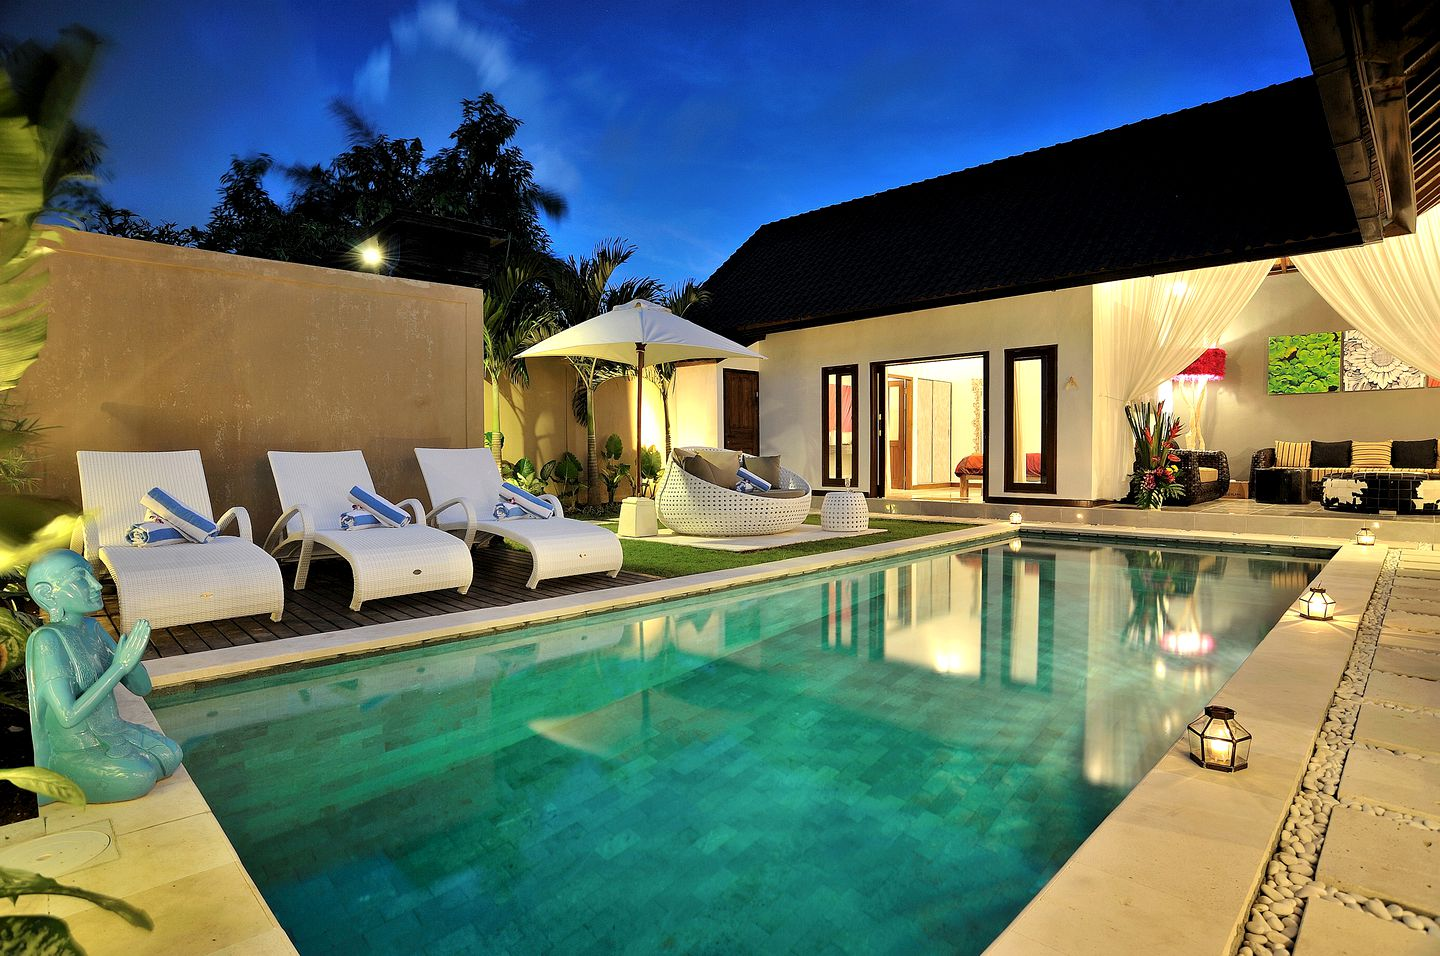 This Bali villa is ideal for holidays in Indonesia